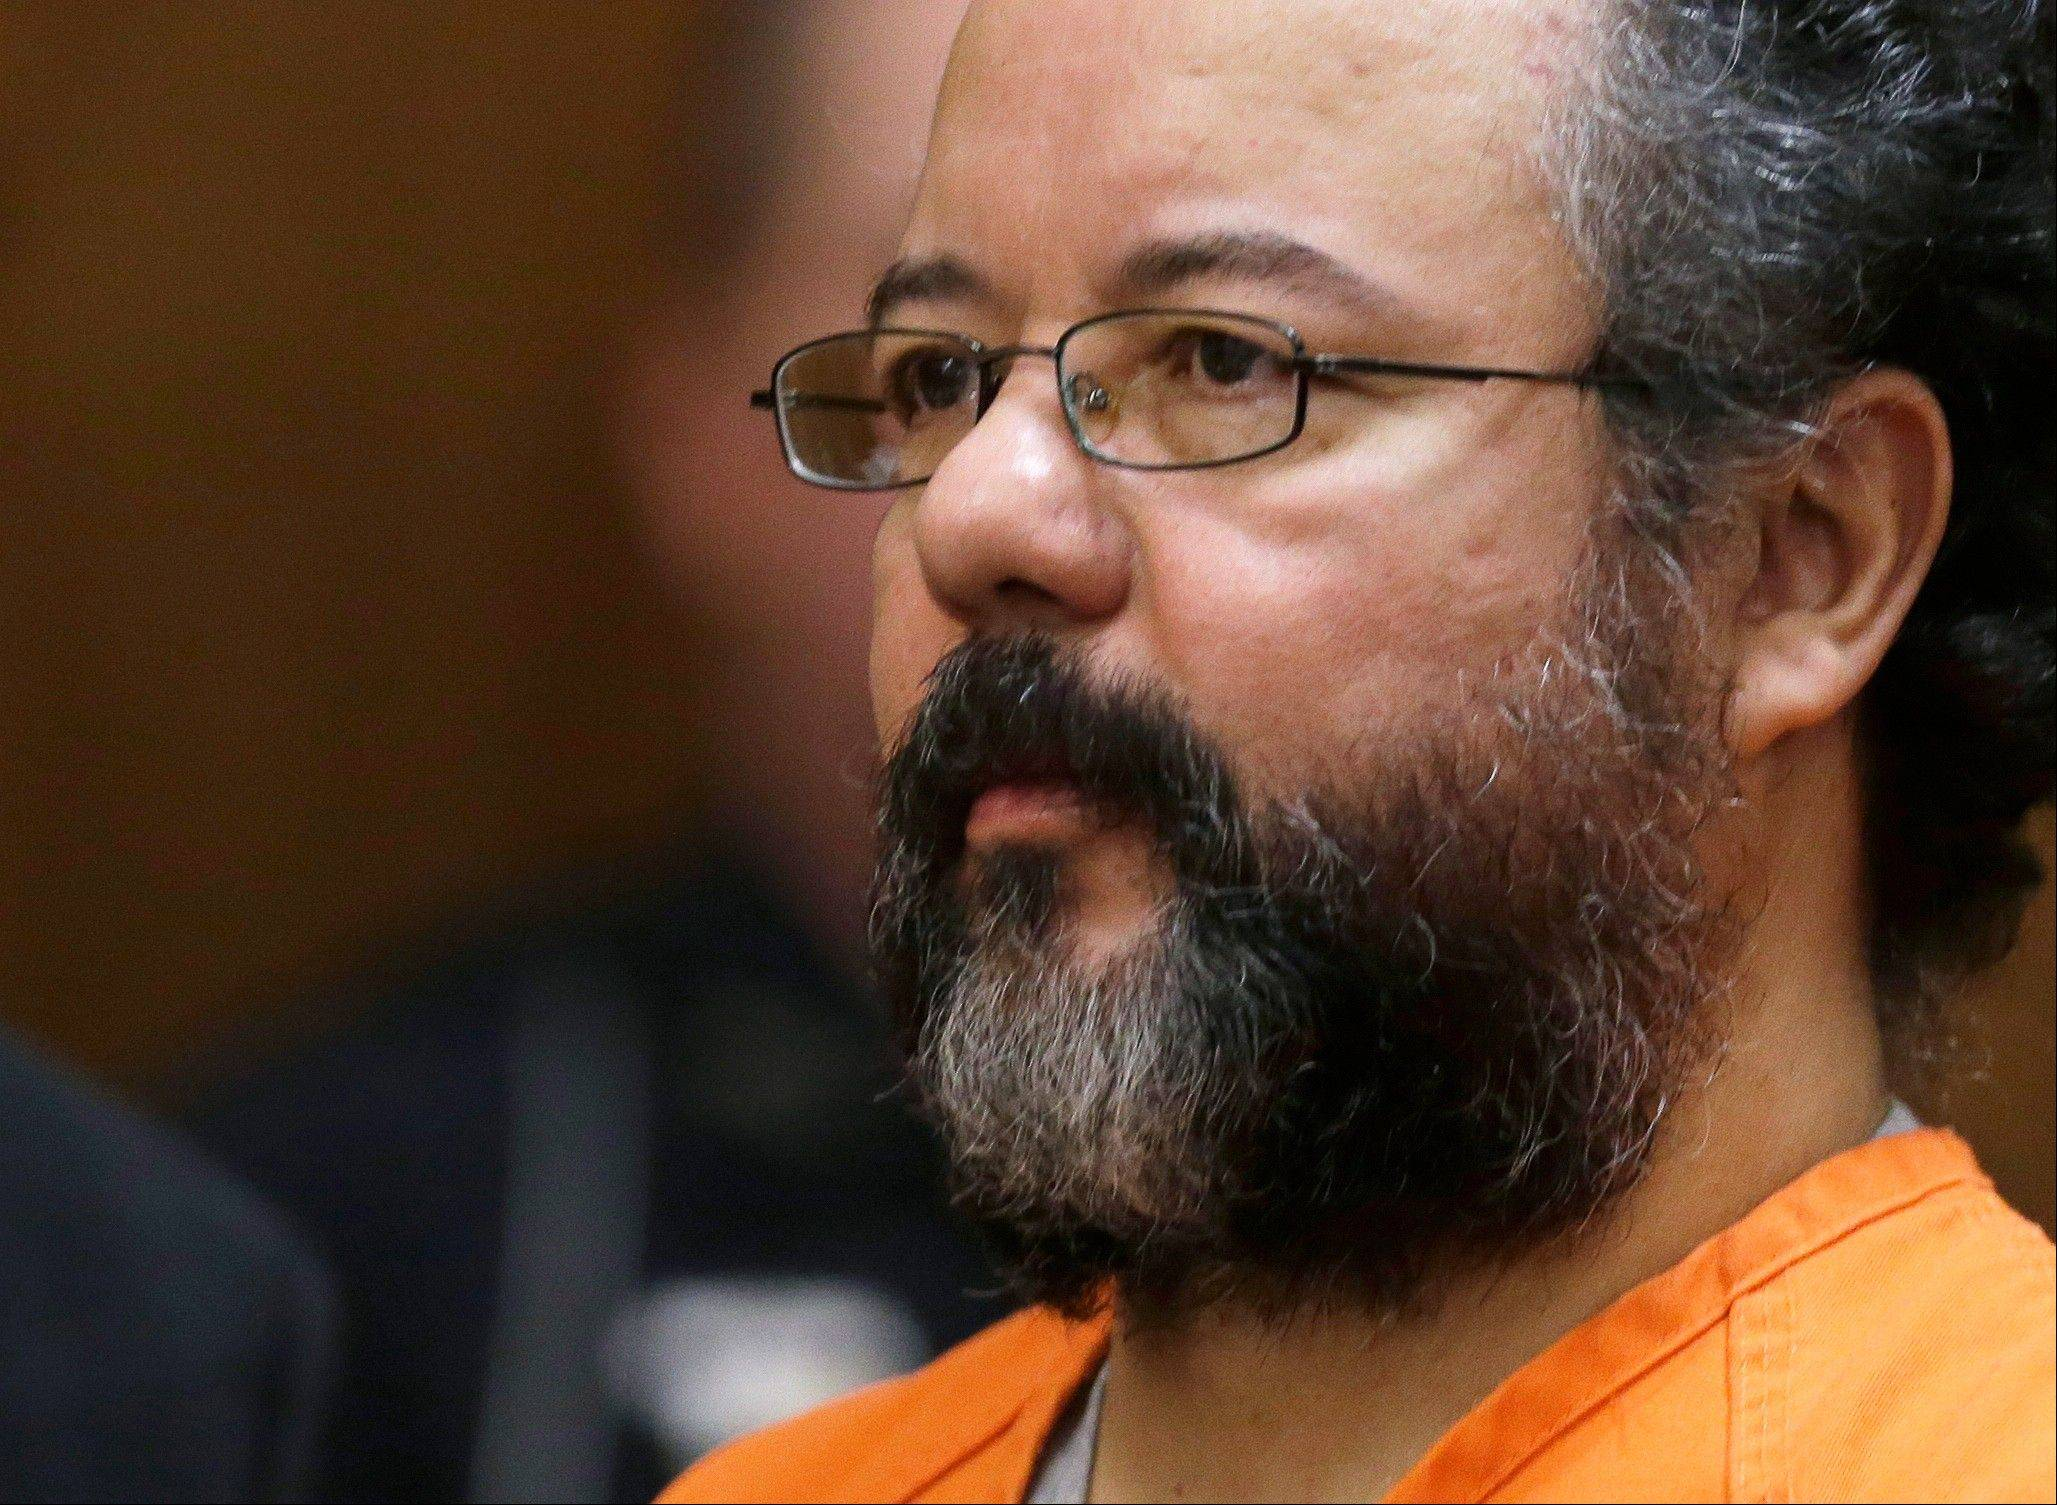 Ariel Castro committed suicide when he hanged himself in his cell, two nationally regarded corrections consultants concluded following a review of his death released Tuesday, Dec. 3, 2013, rejecting earlier suggestions he may have died accidentally while seeking a sexual thrill.